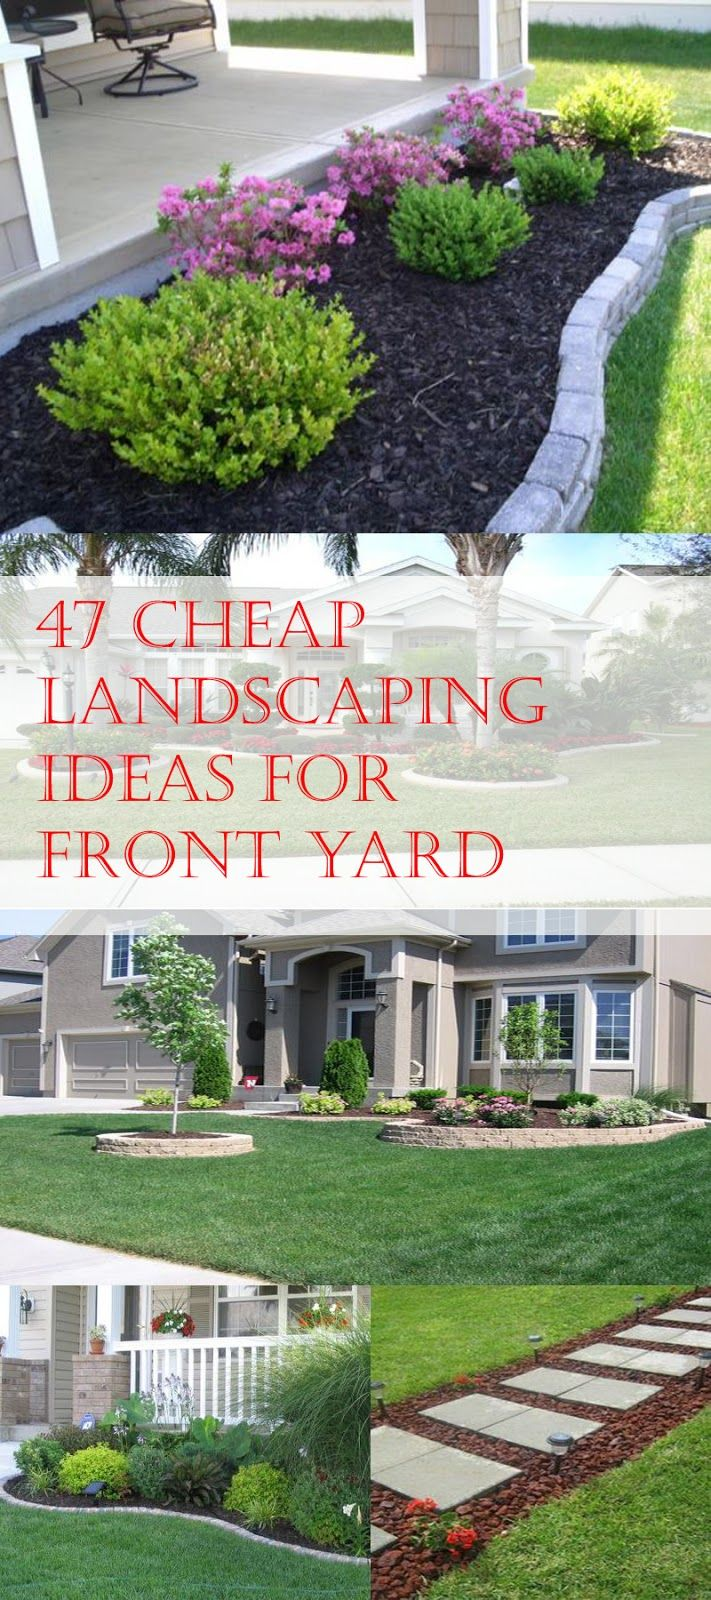 47 Cheap Landscaping Ideas For Front Yard | Landscaping ...